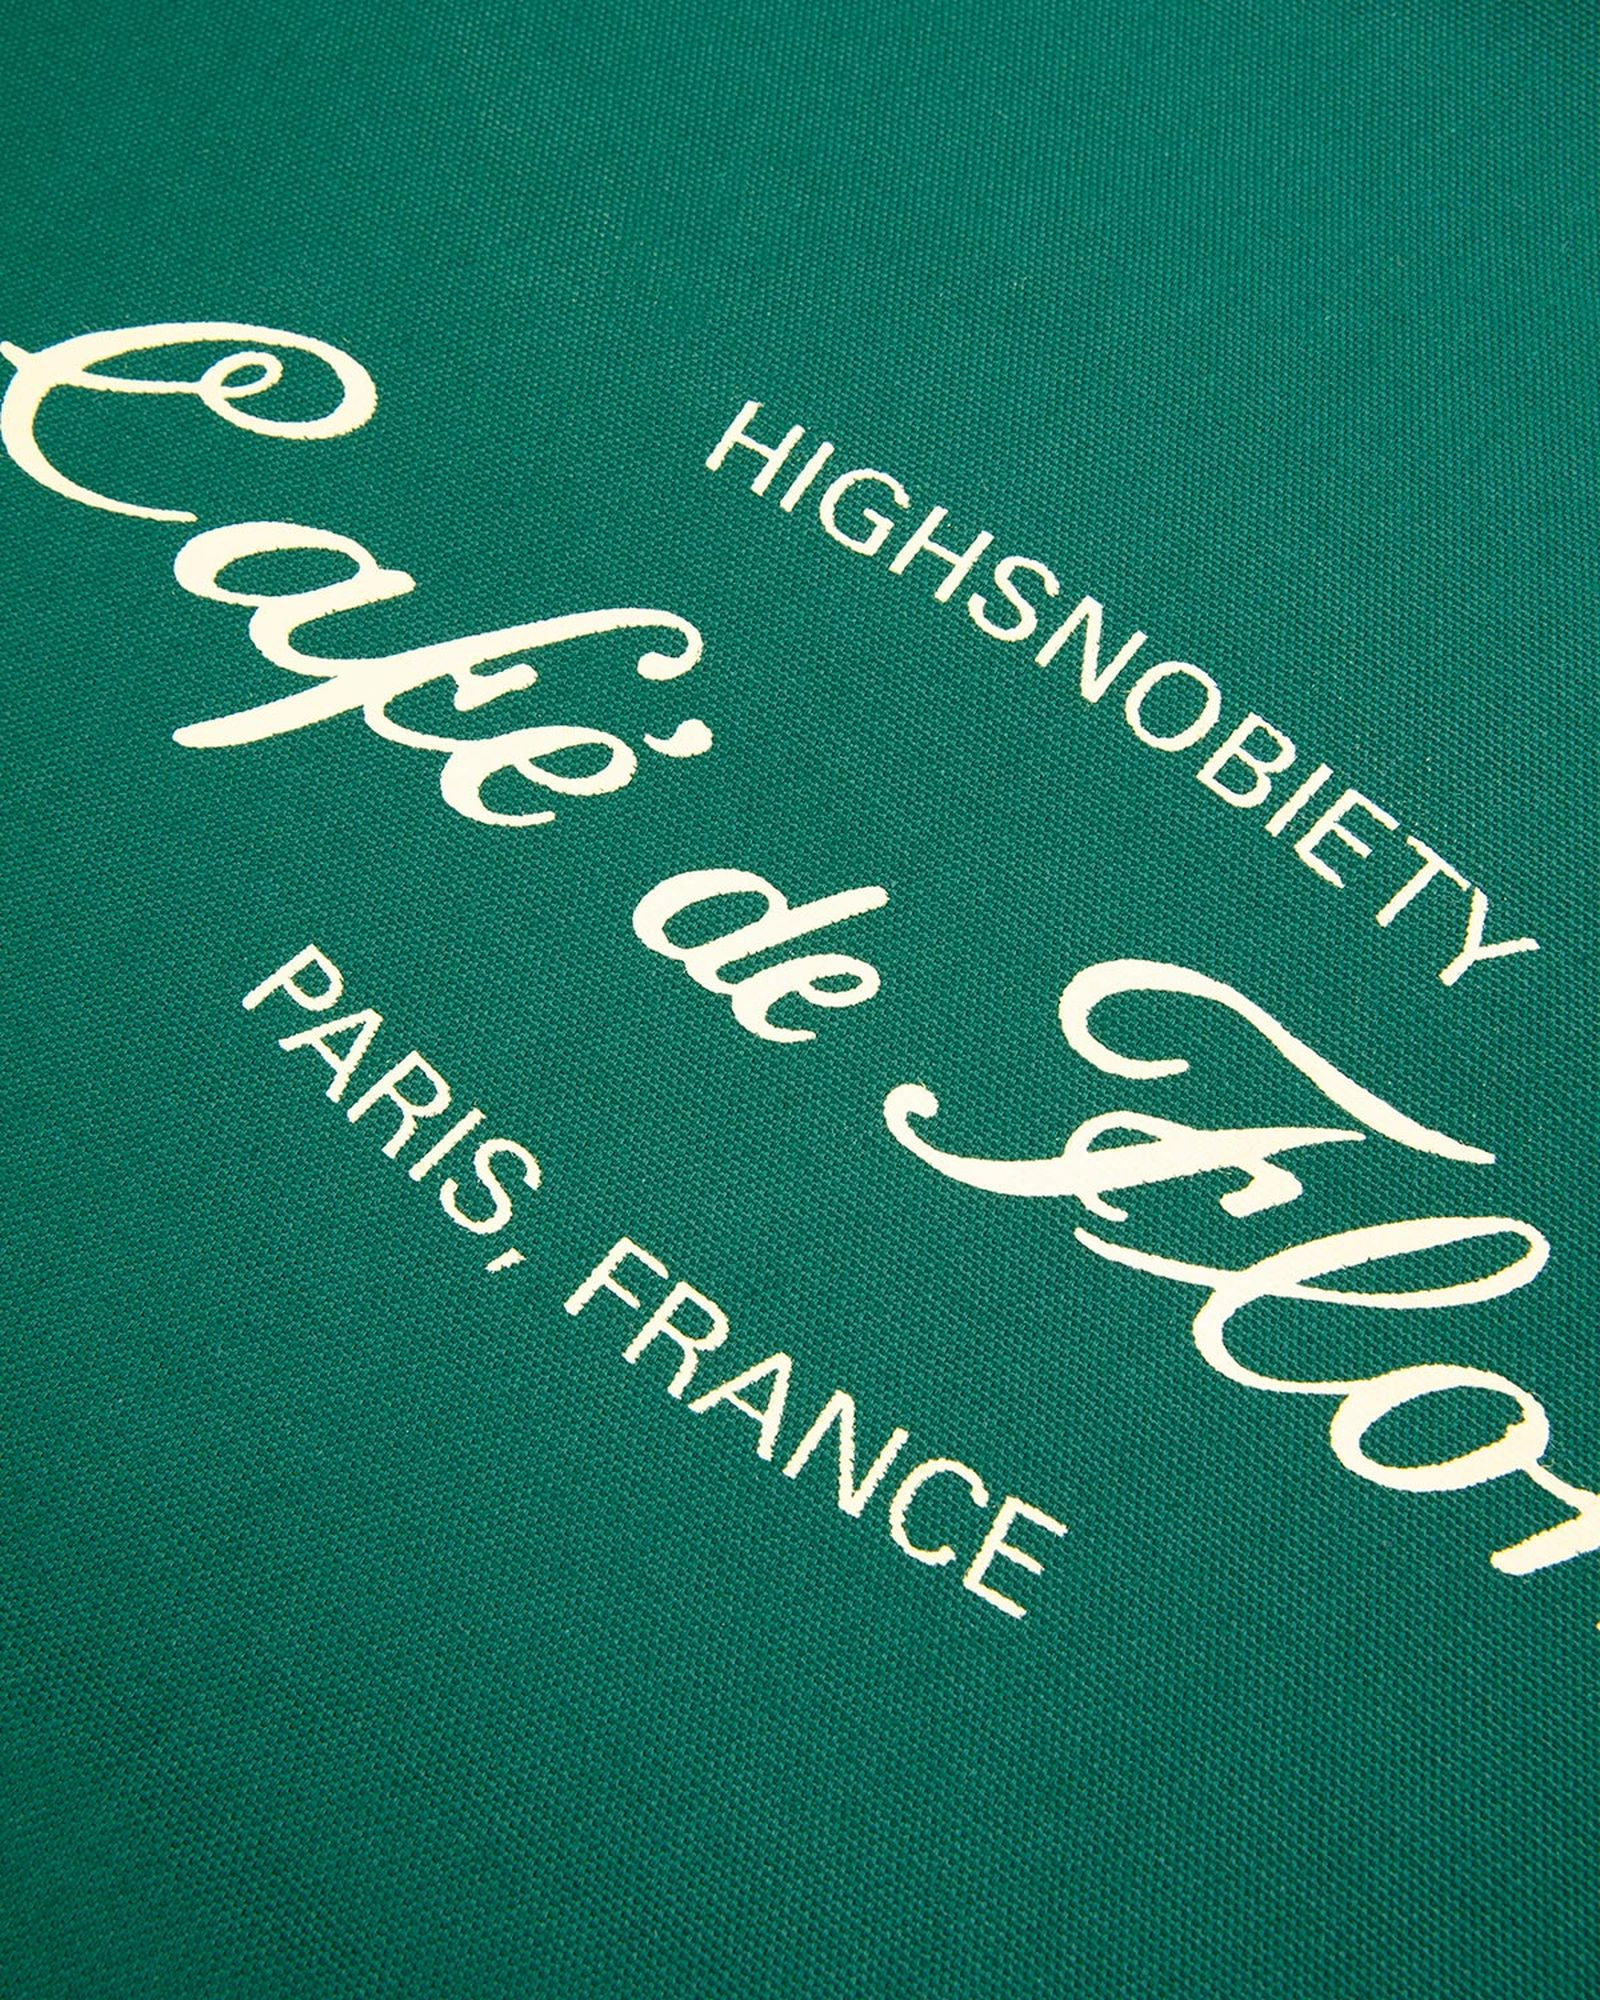 not-in-paris-releases-cafe-flore-02